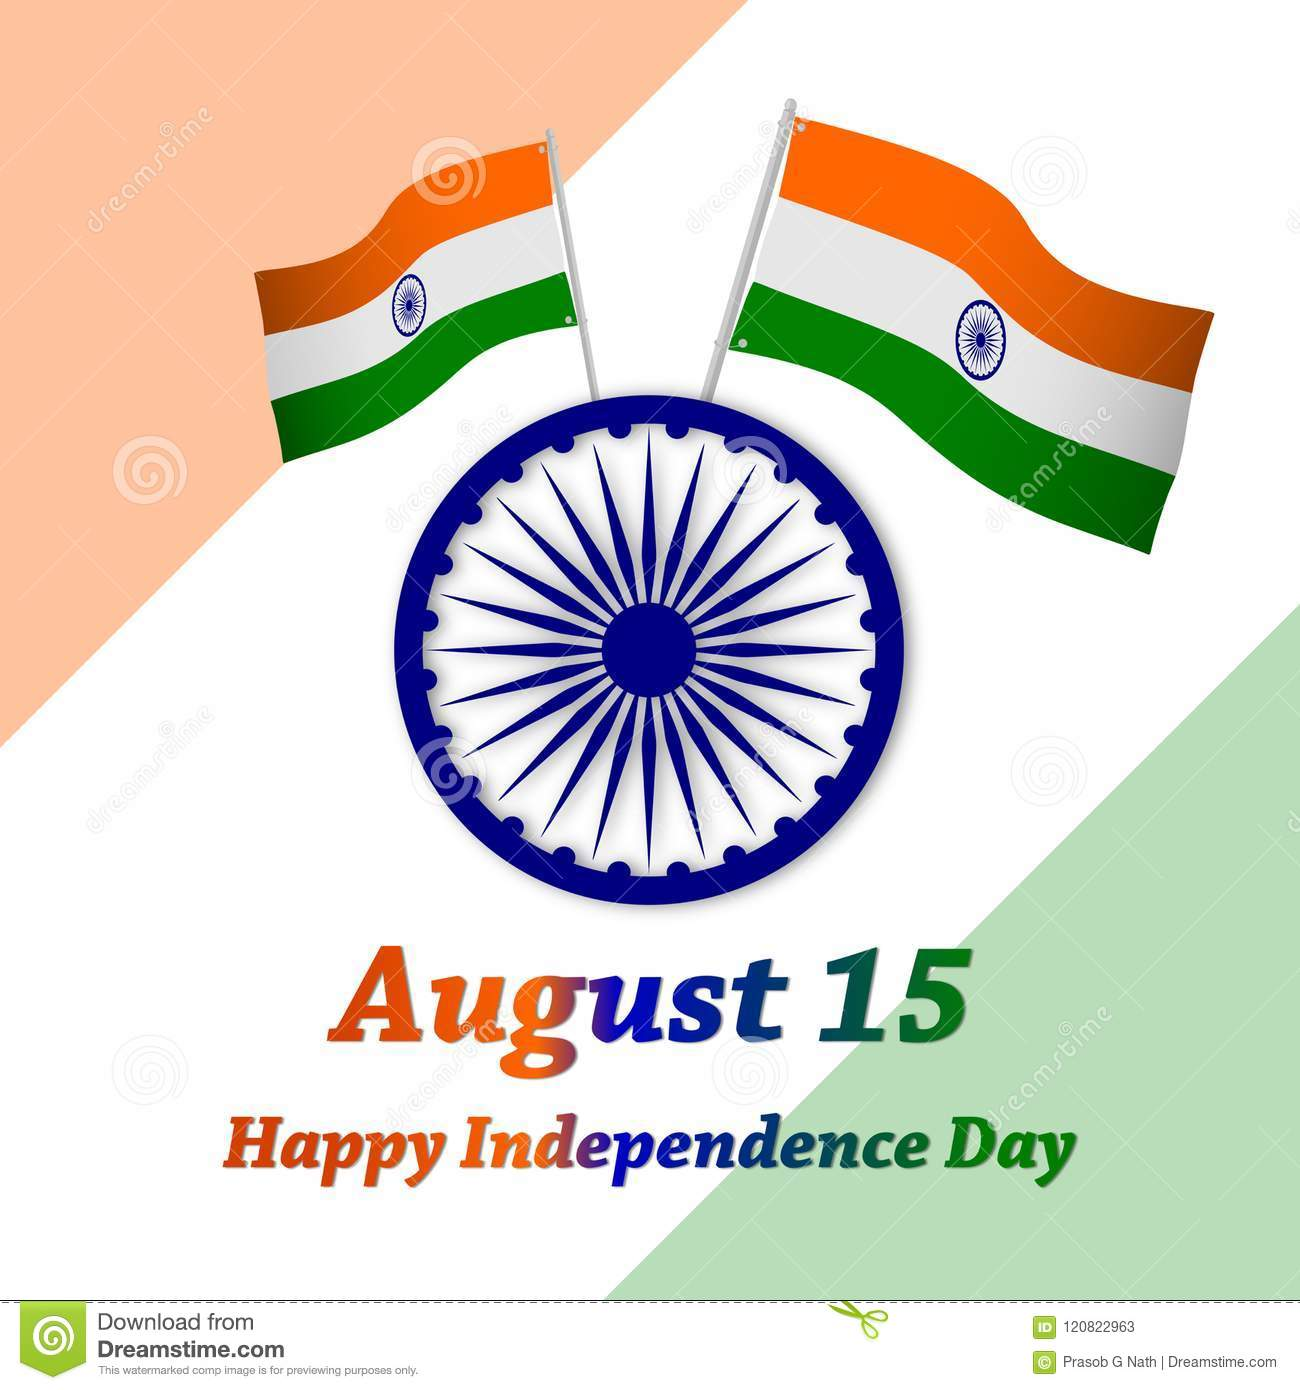 Happy Independence Day India August 15eeting Card Vector Stock